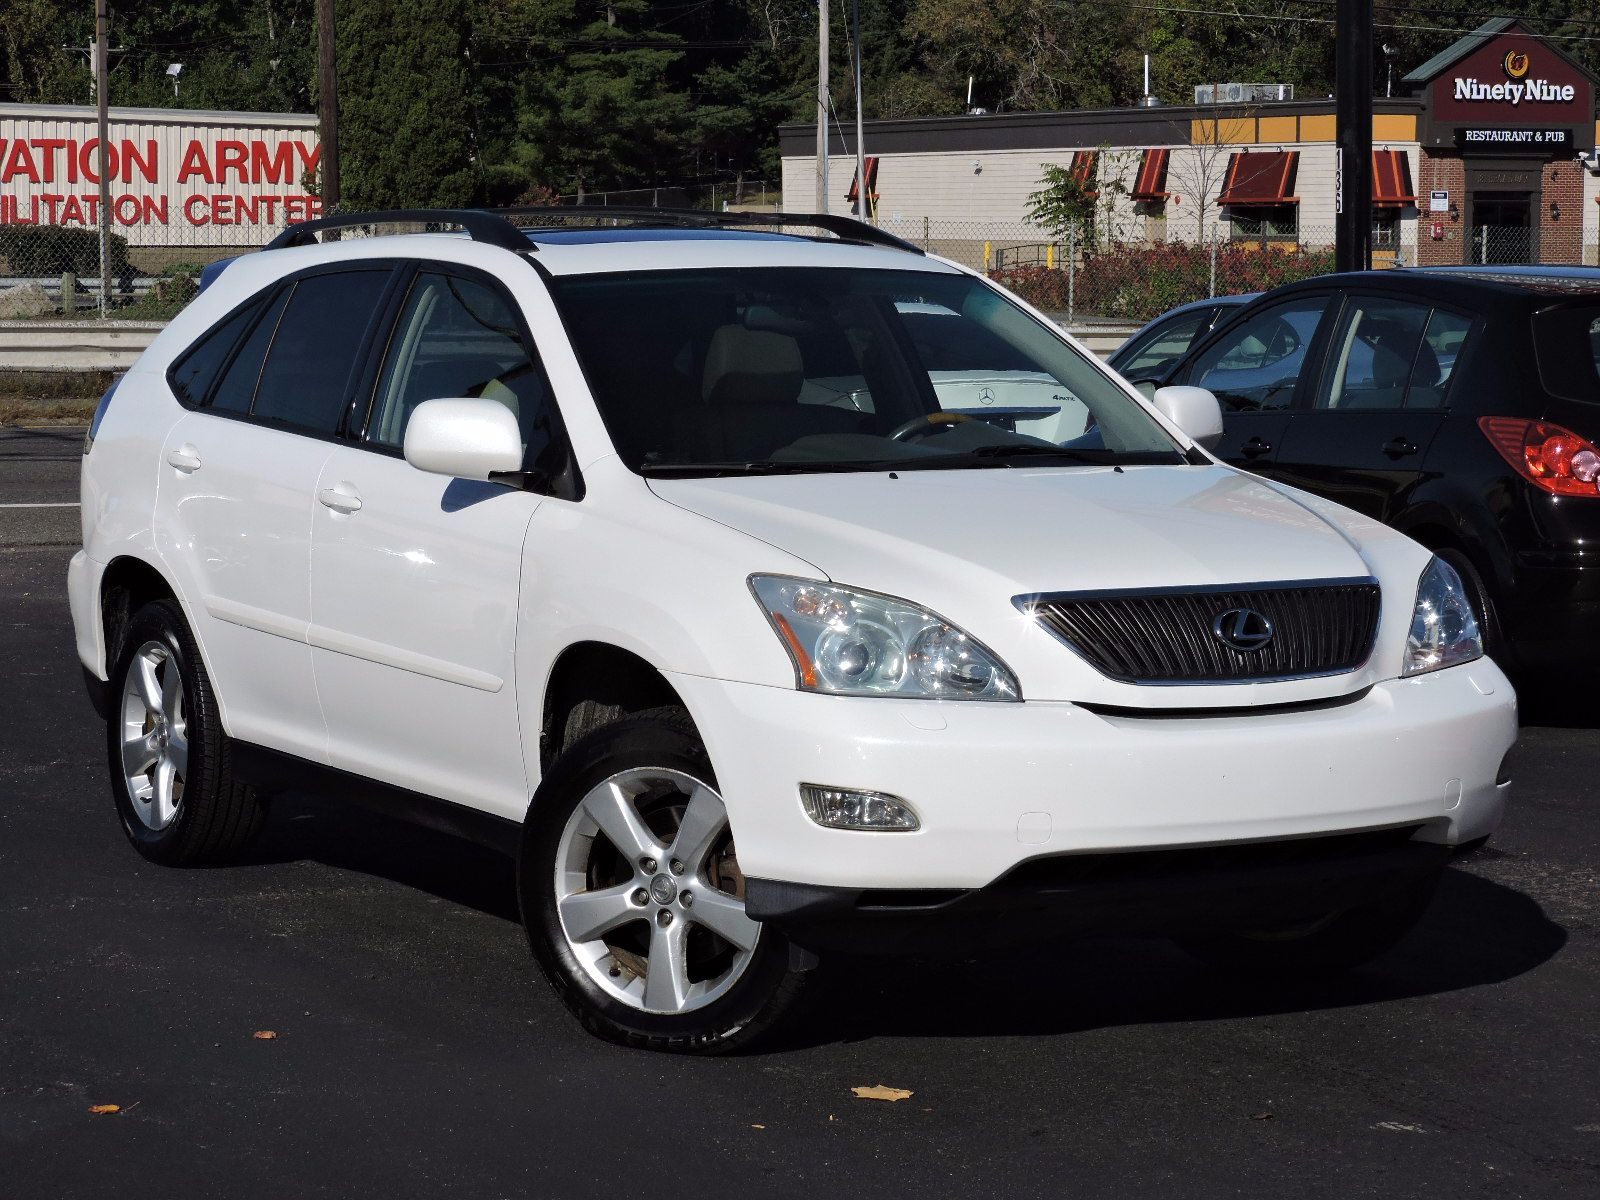 2004 Lexus RX 330 - All Wheel Drive